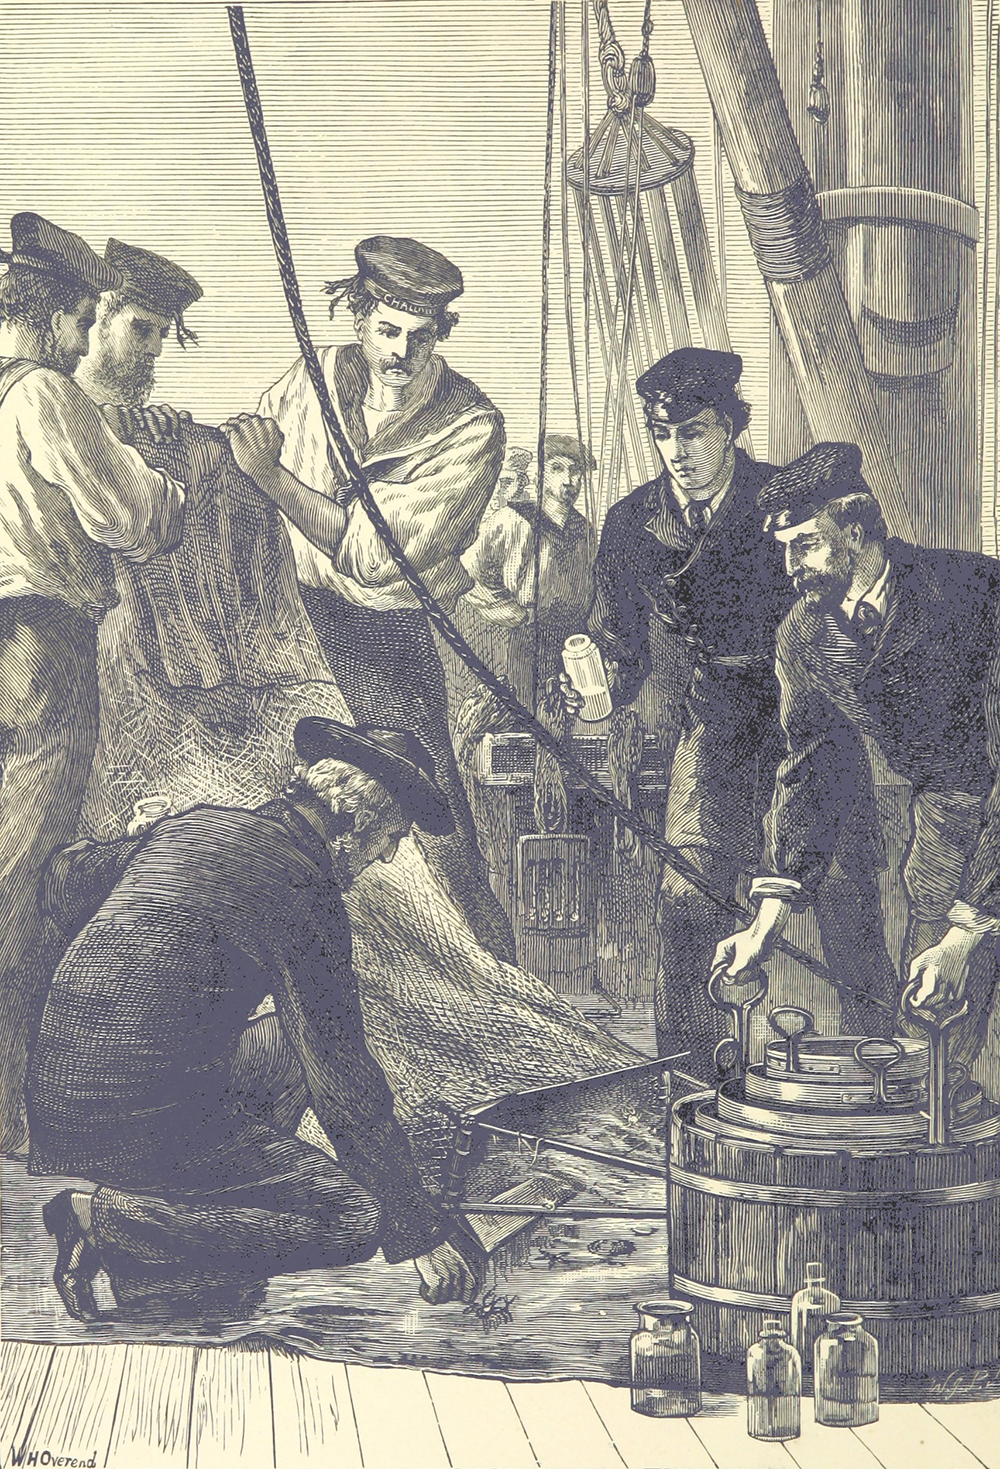 During the Challenger expedition, members of the crew examine creatures dragged up by the Challenger's nets. From The Sea: Its Stirring Story of Adventure, Peril & Heroism, 1887. British Library.